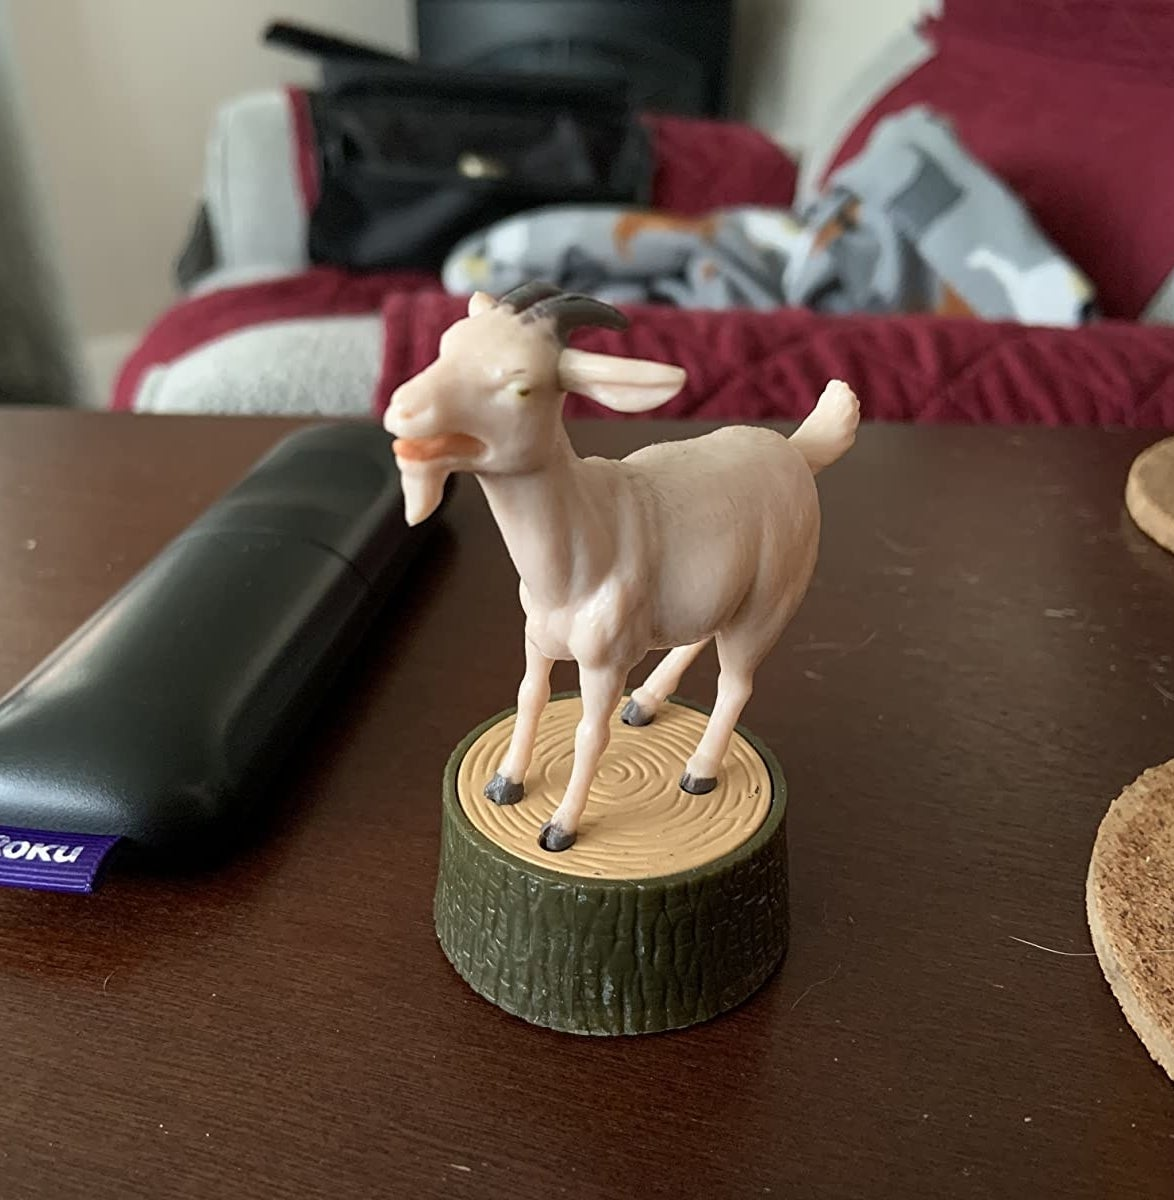 Reviewer photo of the screaming goat on a desk